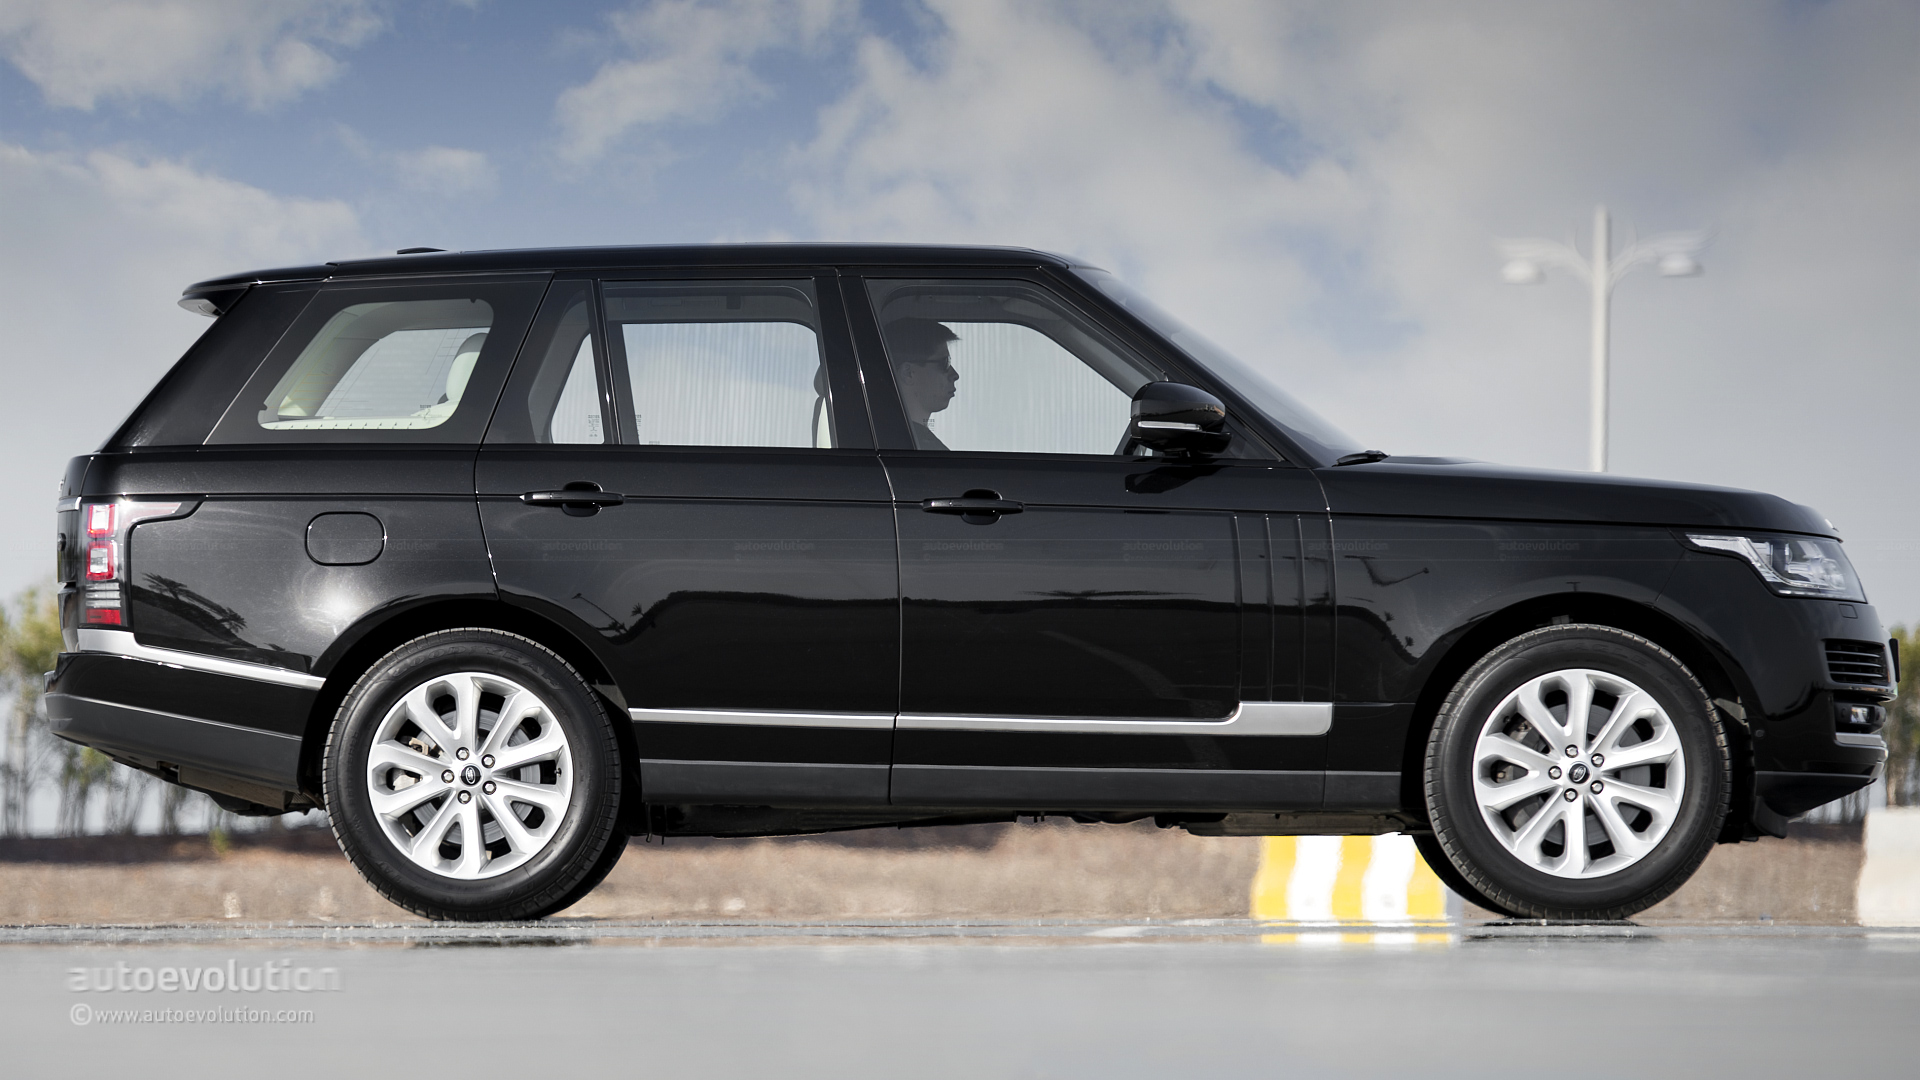 104 144 Jaguar and Range Rover Vehicles Recalled in Three Separate